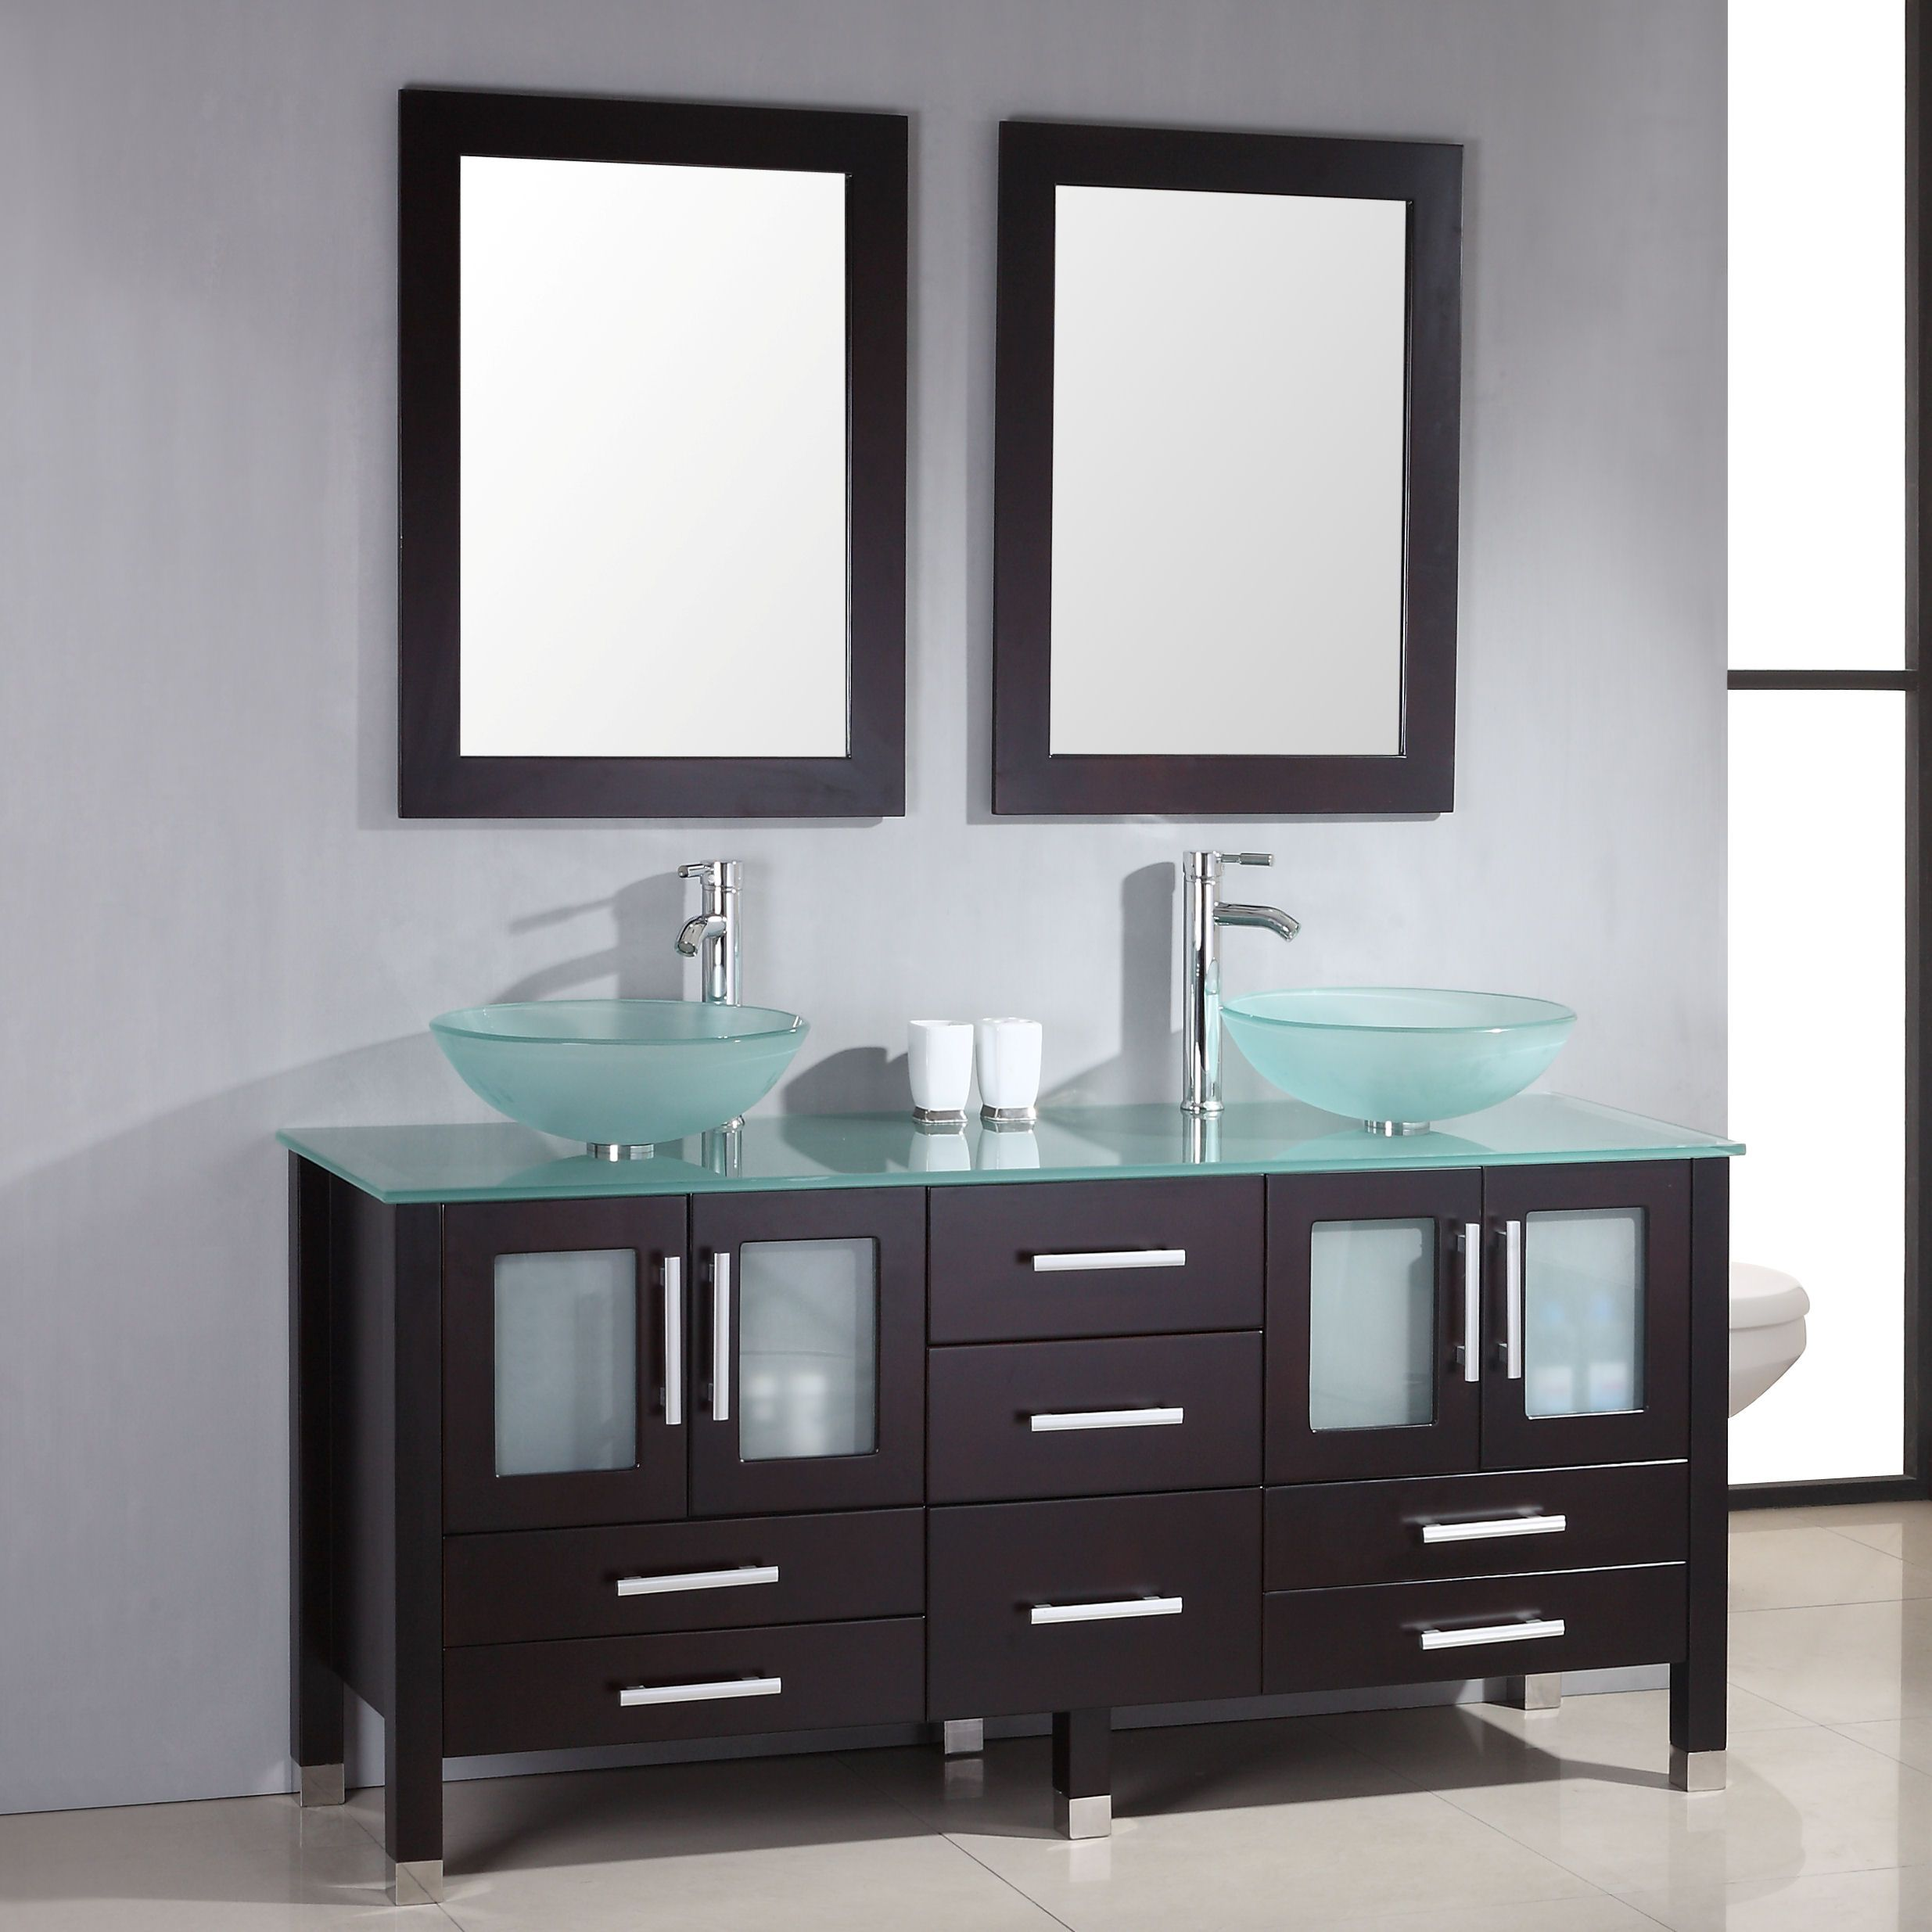 Cambridge Collection Of Modern Bathroom Vanities Is A Perfect